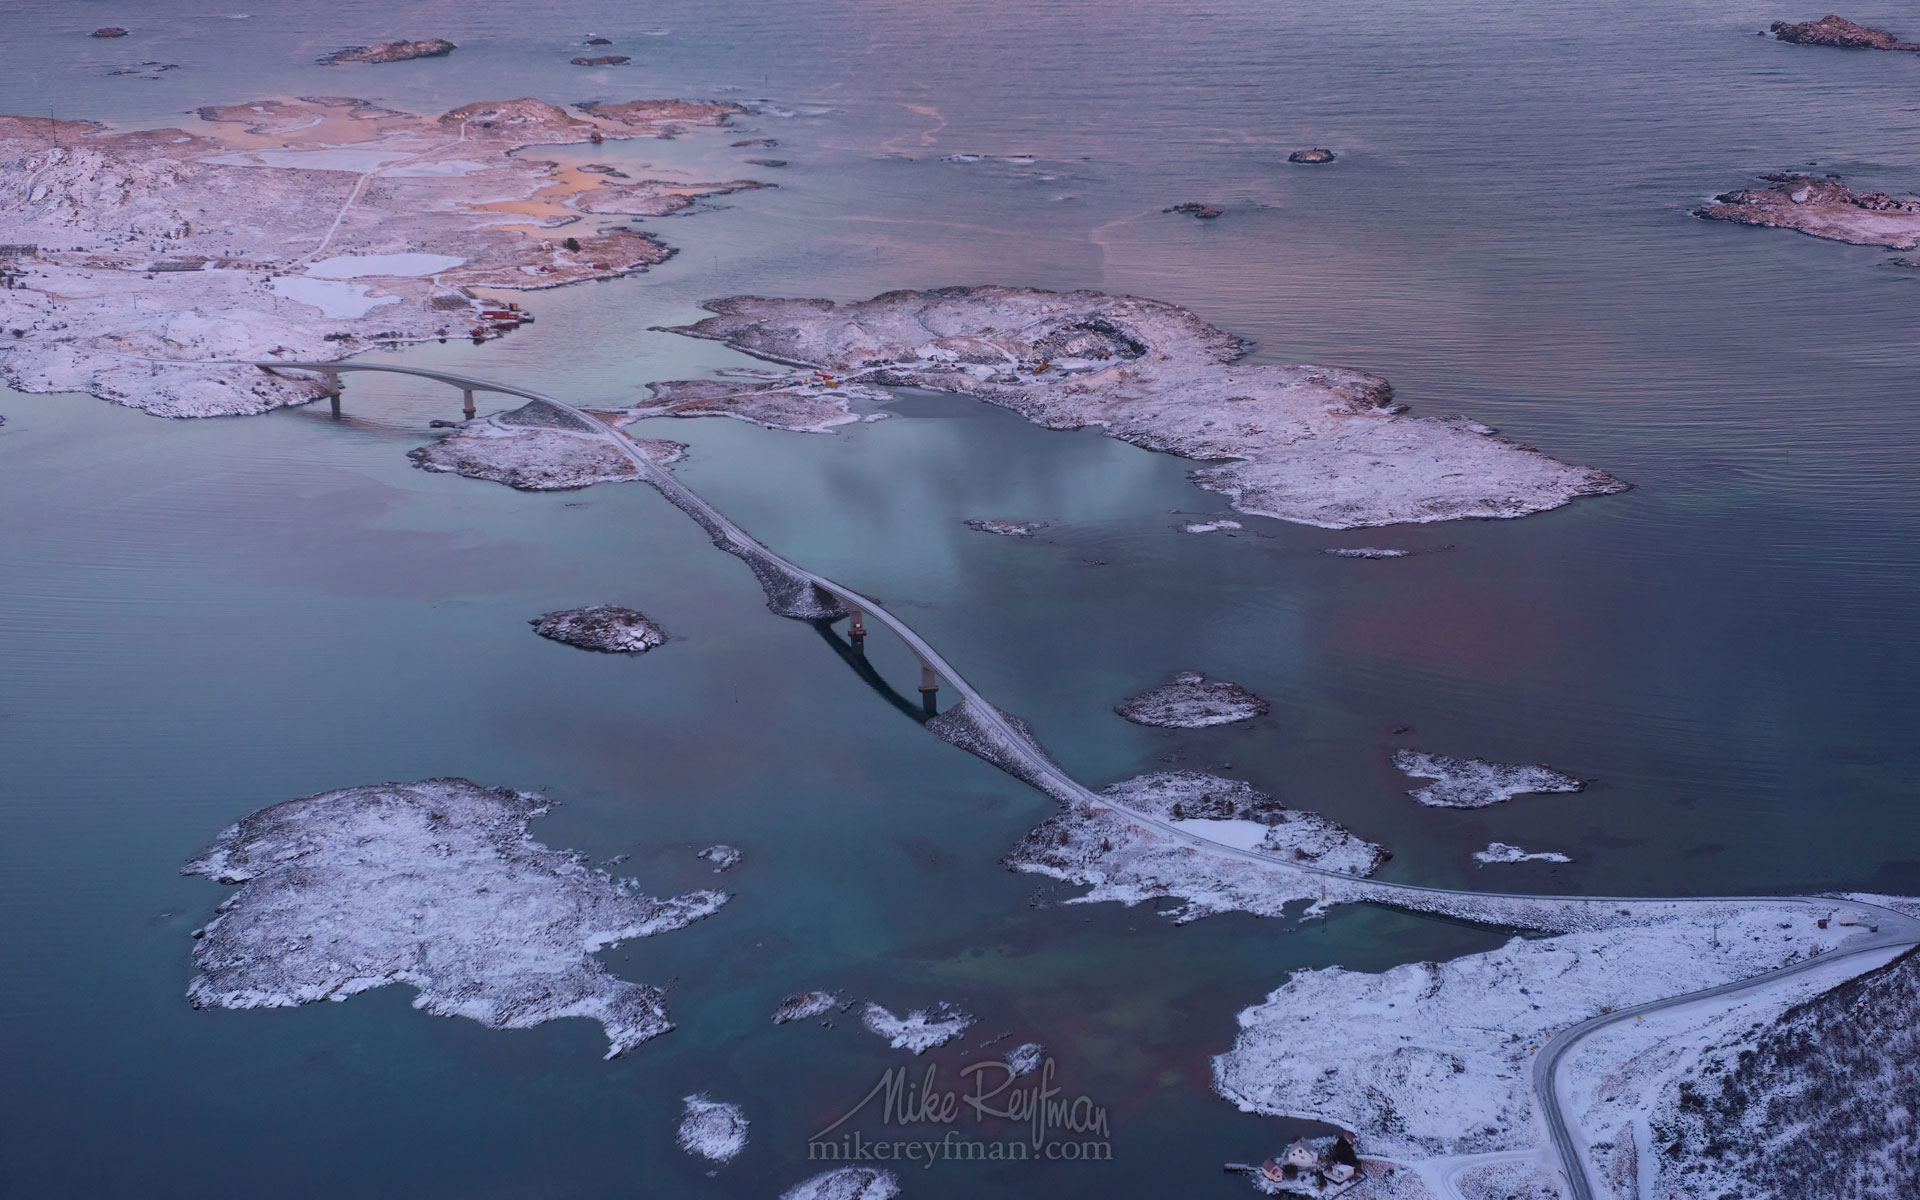 Fredvang Bridges. Aerial view of Lofoten archipelago at sunrise. Moskenes, Lofoten archipelago, Norway. LF-MRD1E1580 - Lofoten Archipelago in Winter, Arctic Norway - Mike Reyfman Photography